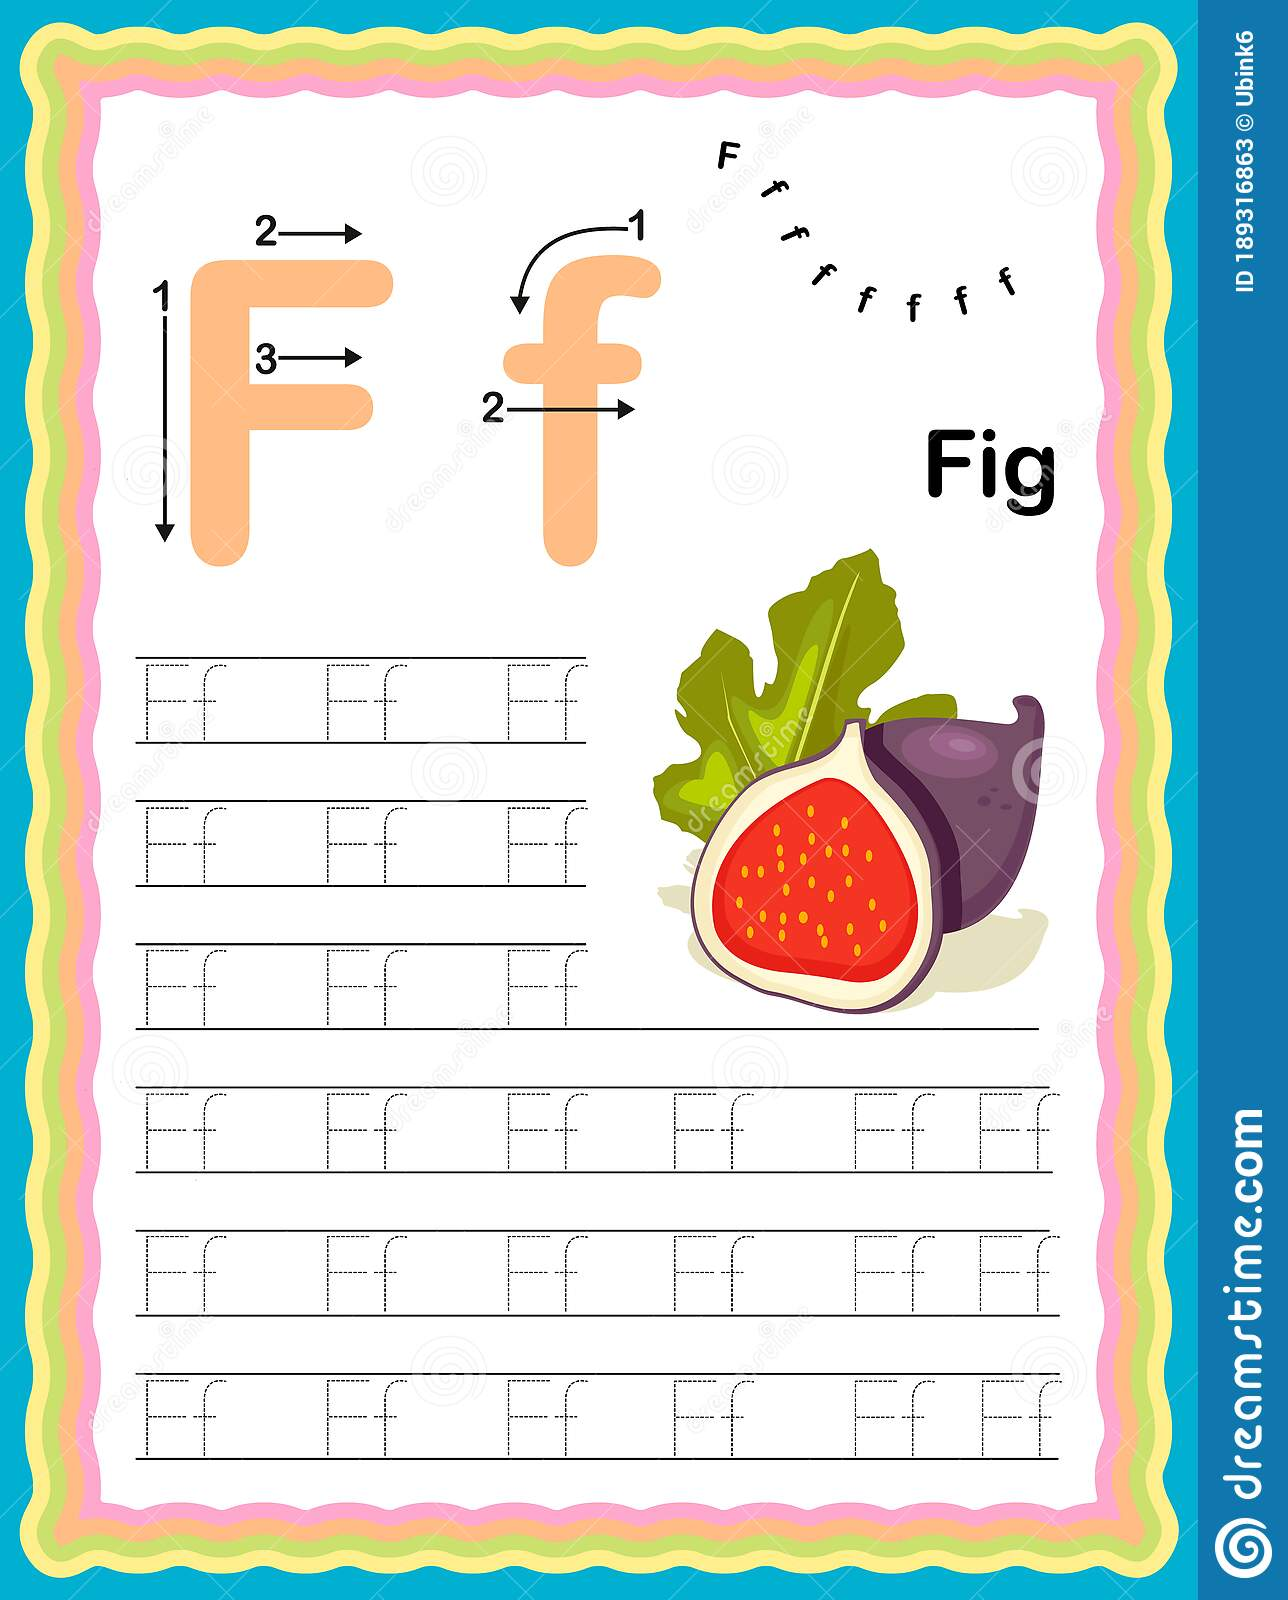 Preschool Colorful Letter F Uppercase And Lowercase